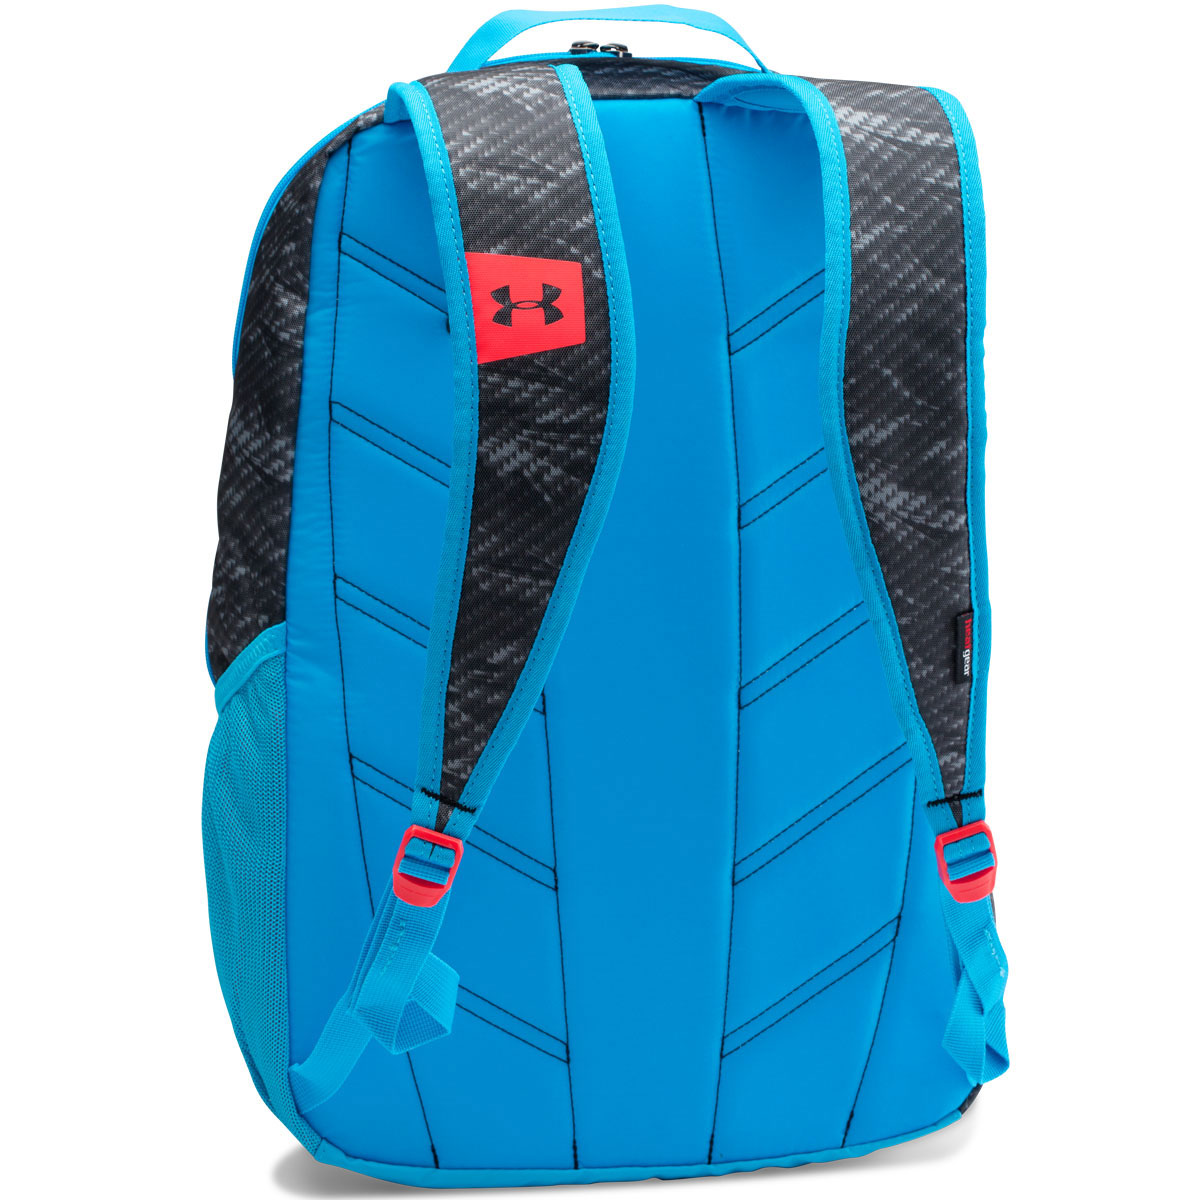 under armour rucksack cheap   OFF55% The Largest Catalog Discounts df4f0e2694